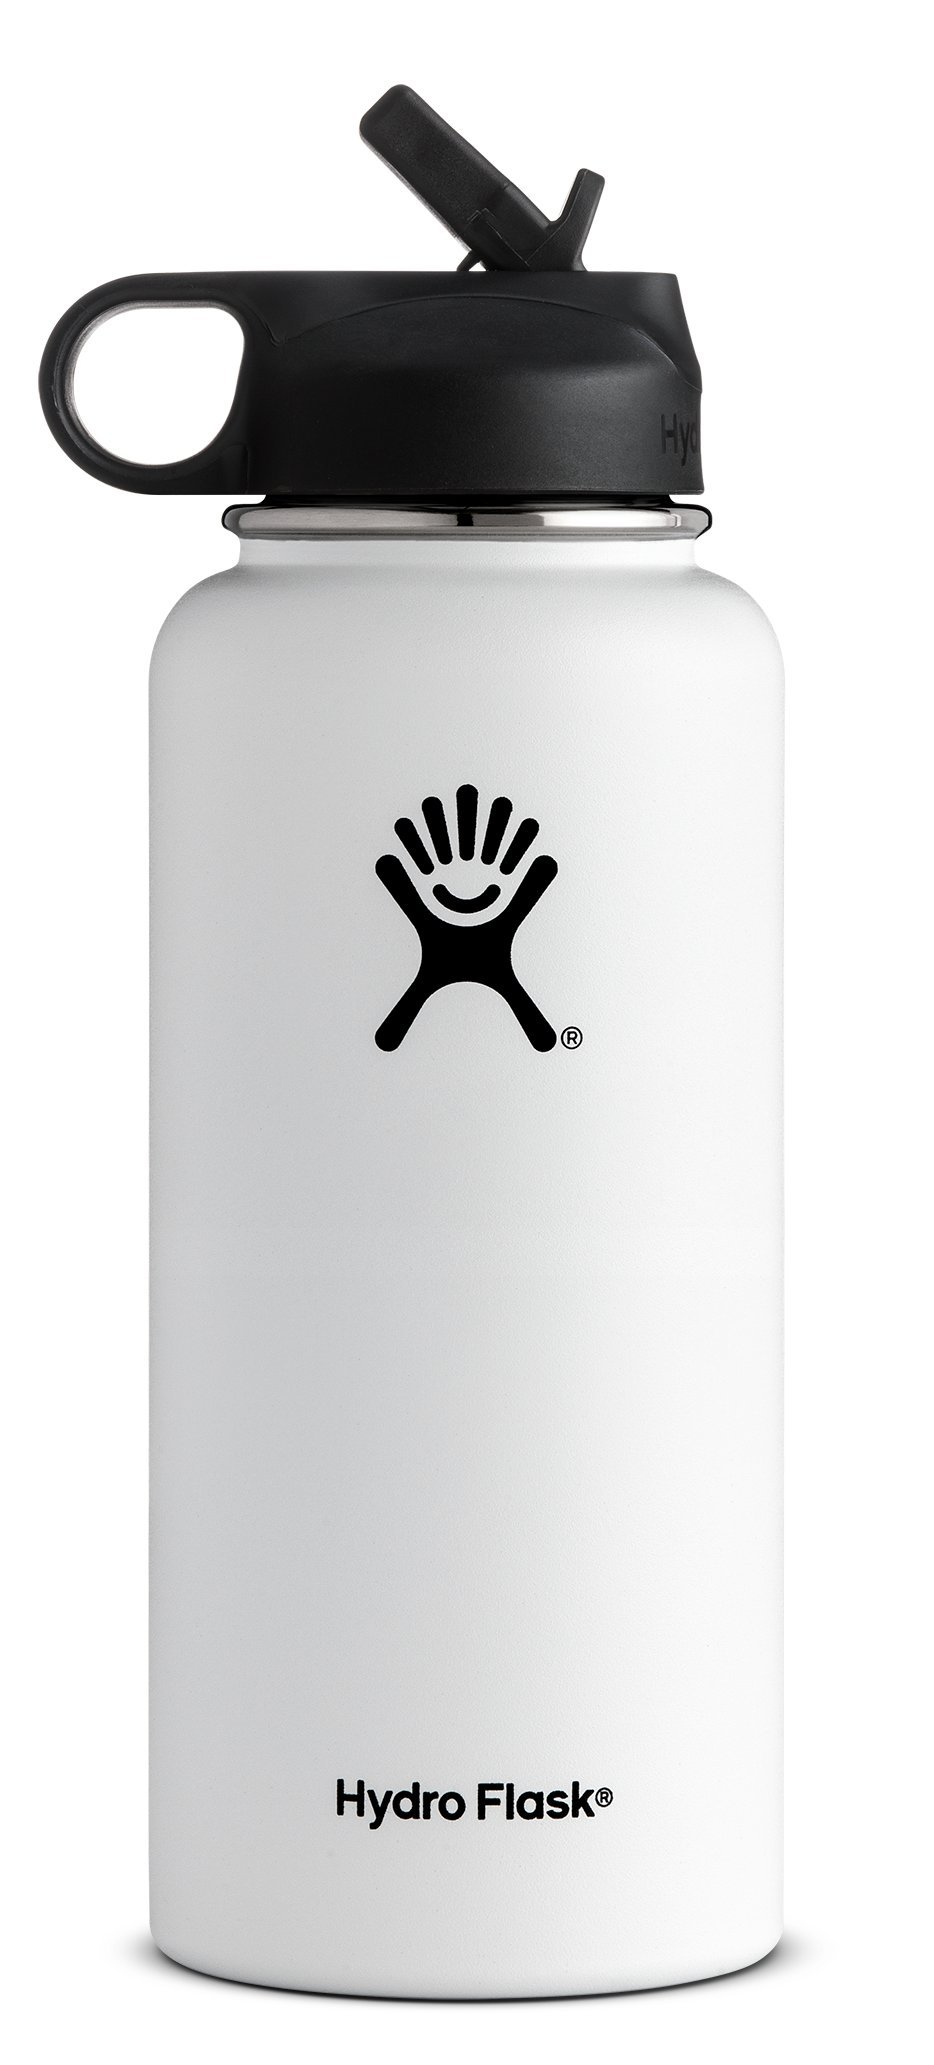 Hydro Flask Vacuum Insulated Stainless Steel Water Bottle Wide Mouth with Straw Lid (White, 32-Ounce) by Hydro Flask